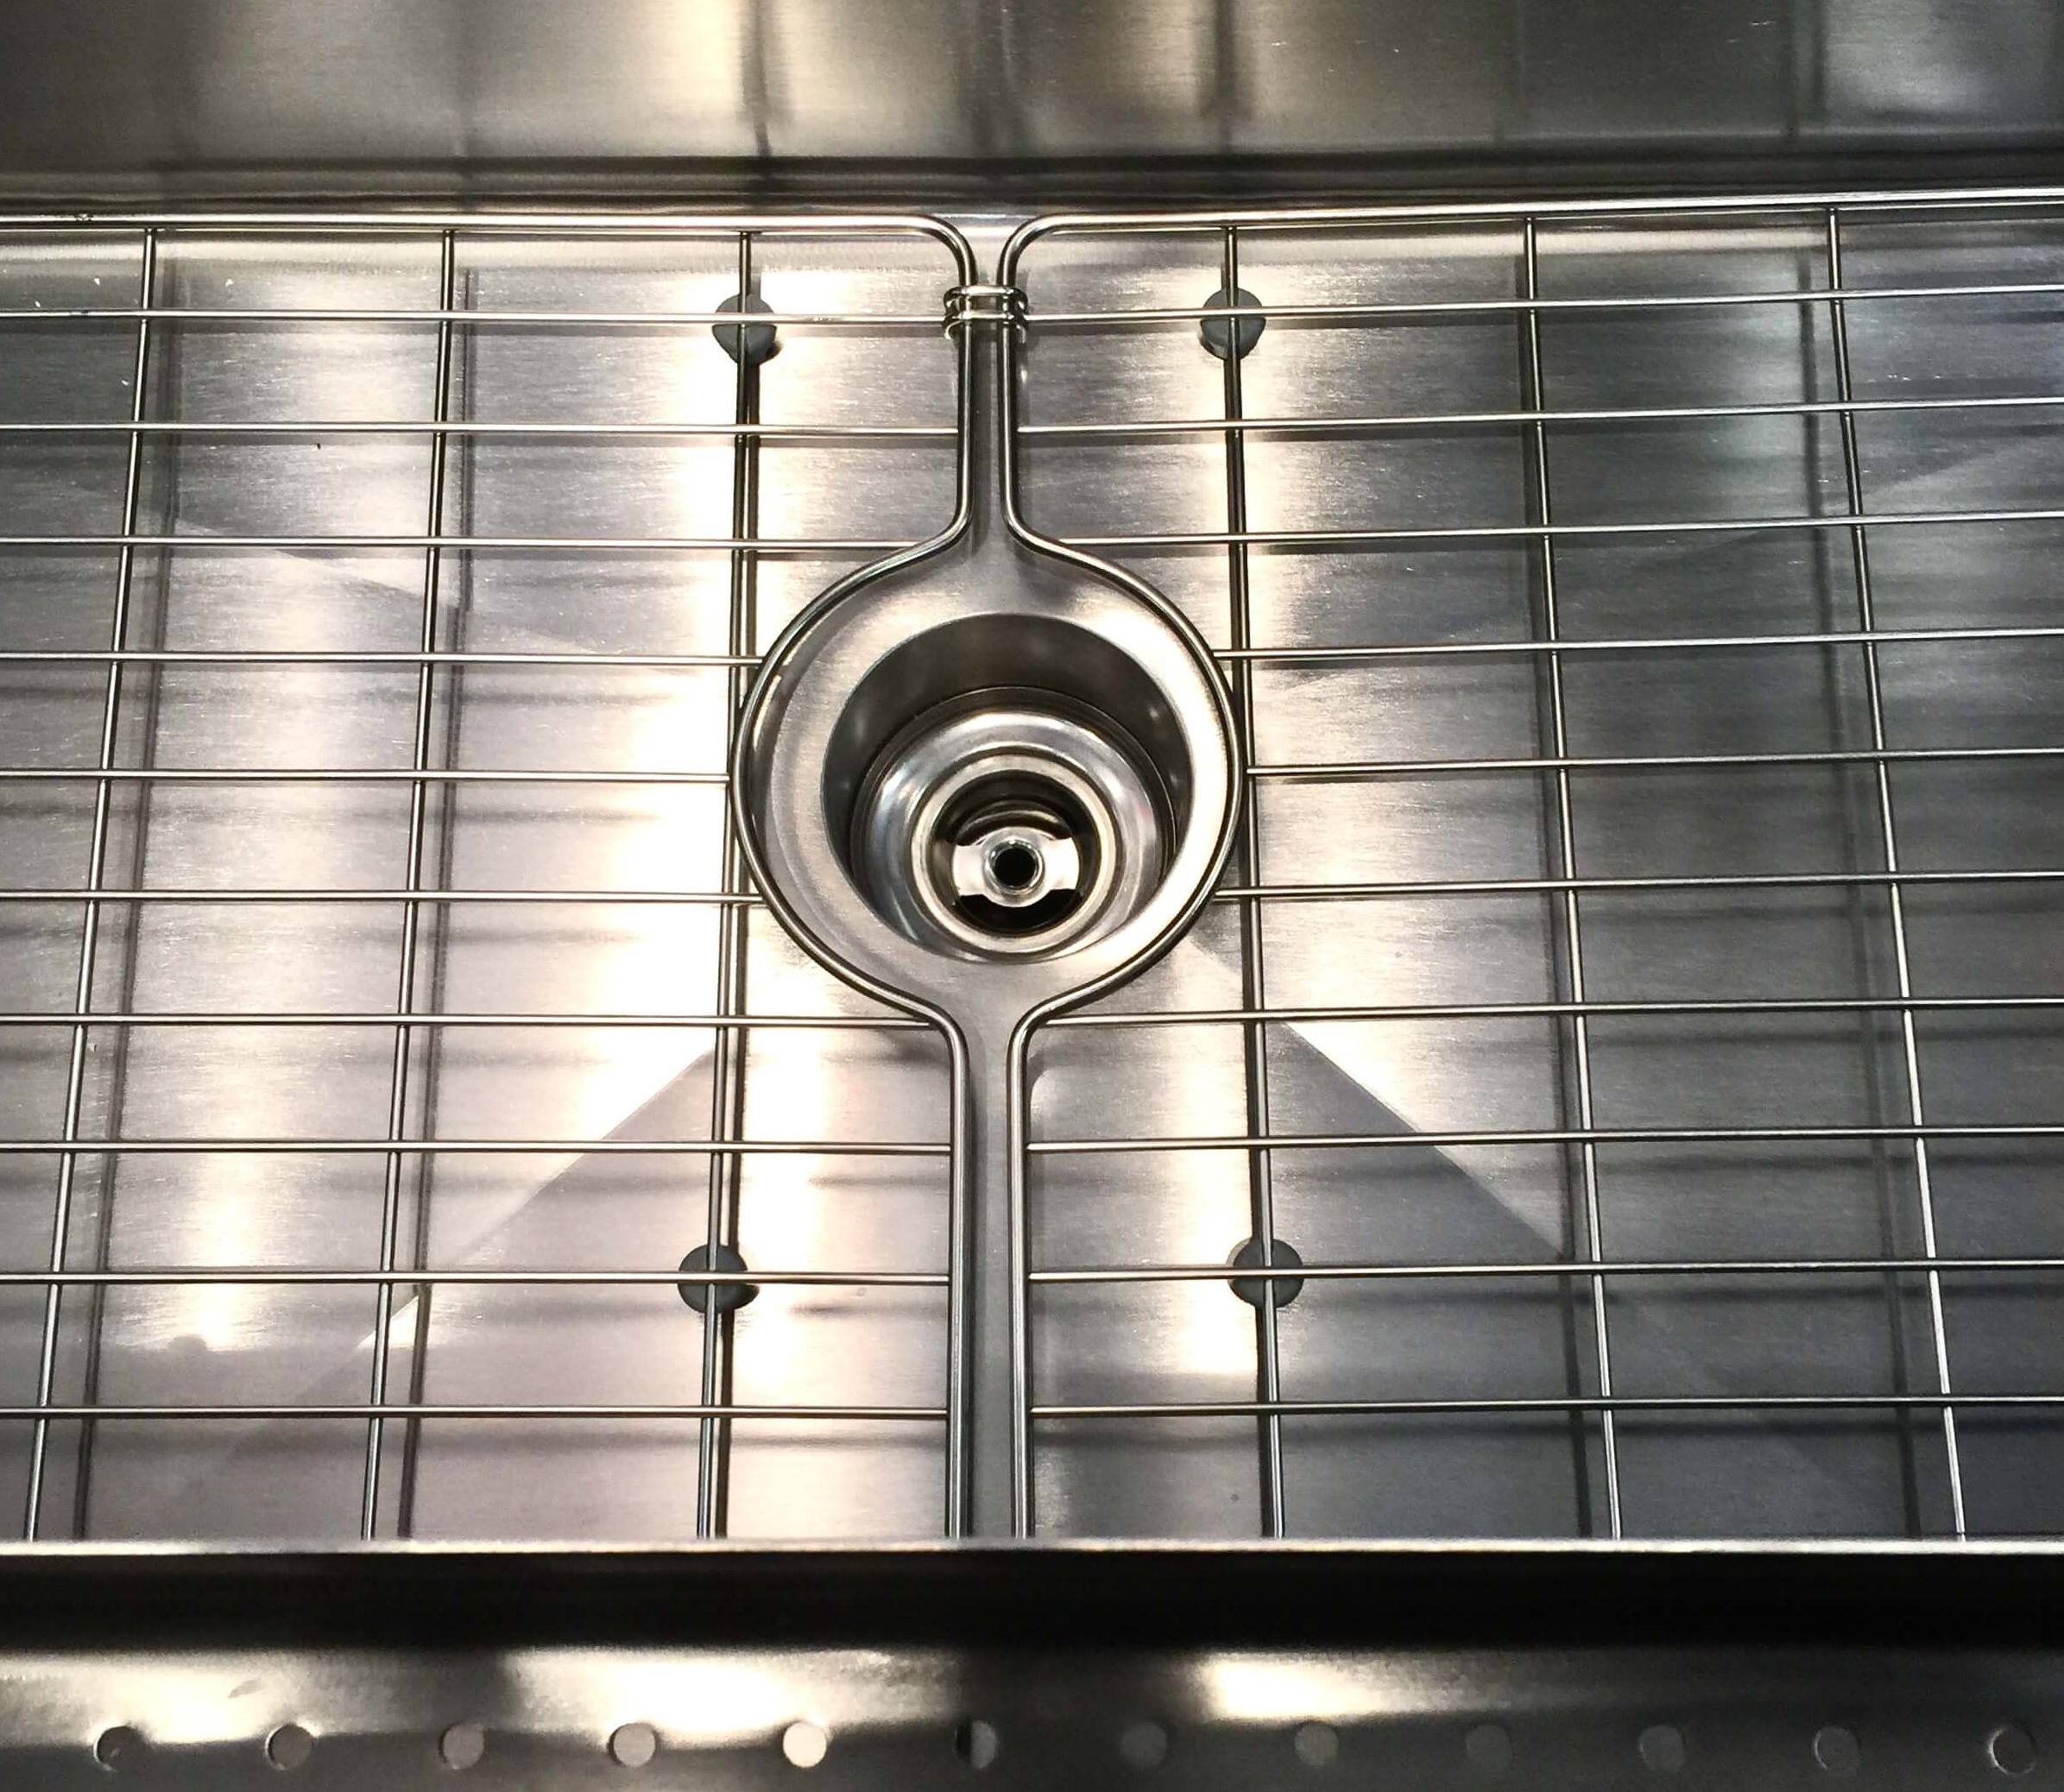 Elkay stainless steel sink with deep drain